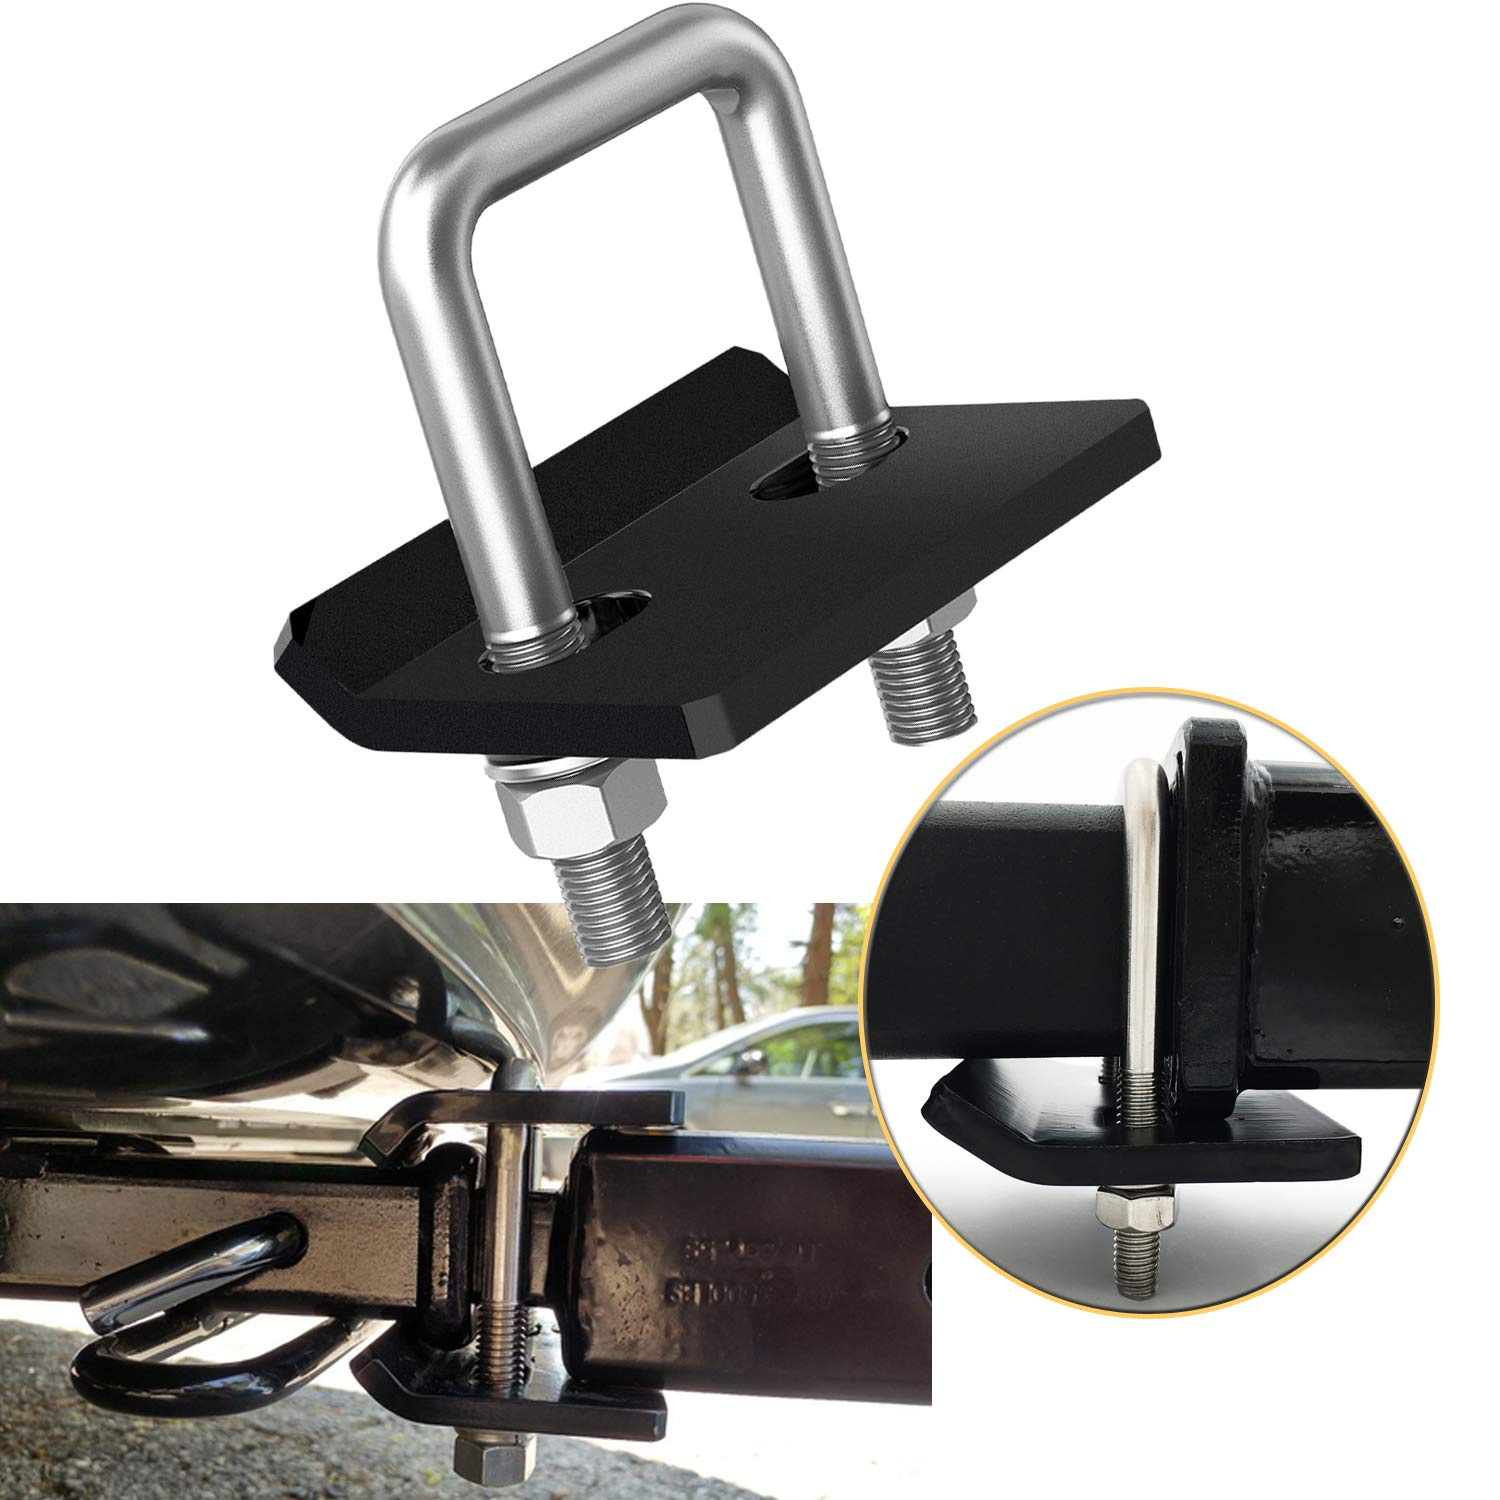 Bentolin Anti-Rattle Stabilizer Hitch Tightener for 1.25 inch and 2 inch Hitches, Corrosion Resistant Heavy-Duty Lock Down Tow Clamp Easy Installation by Bentolin